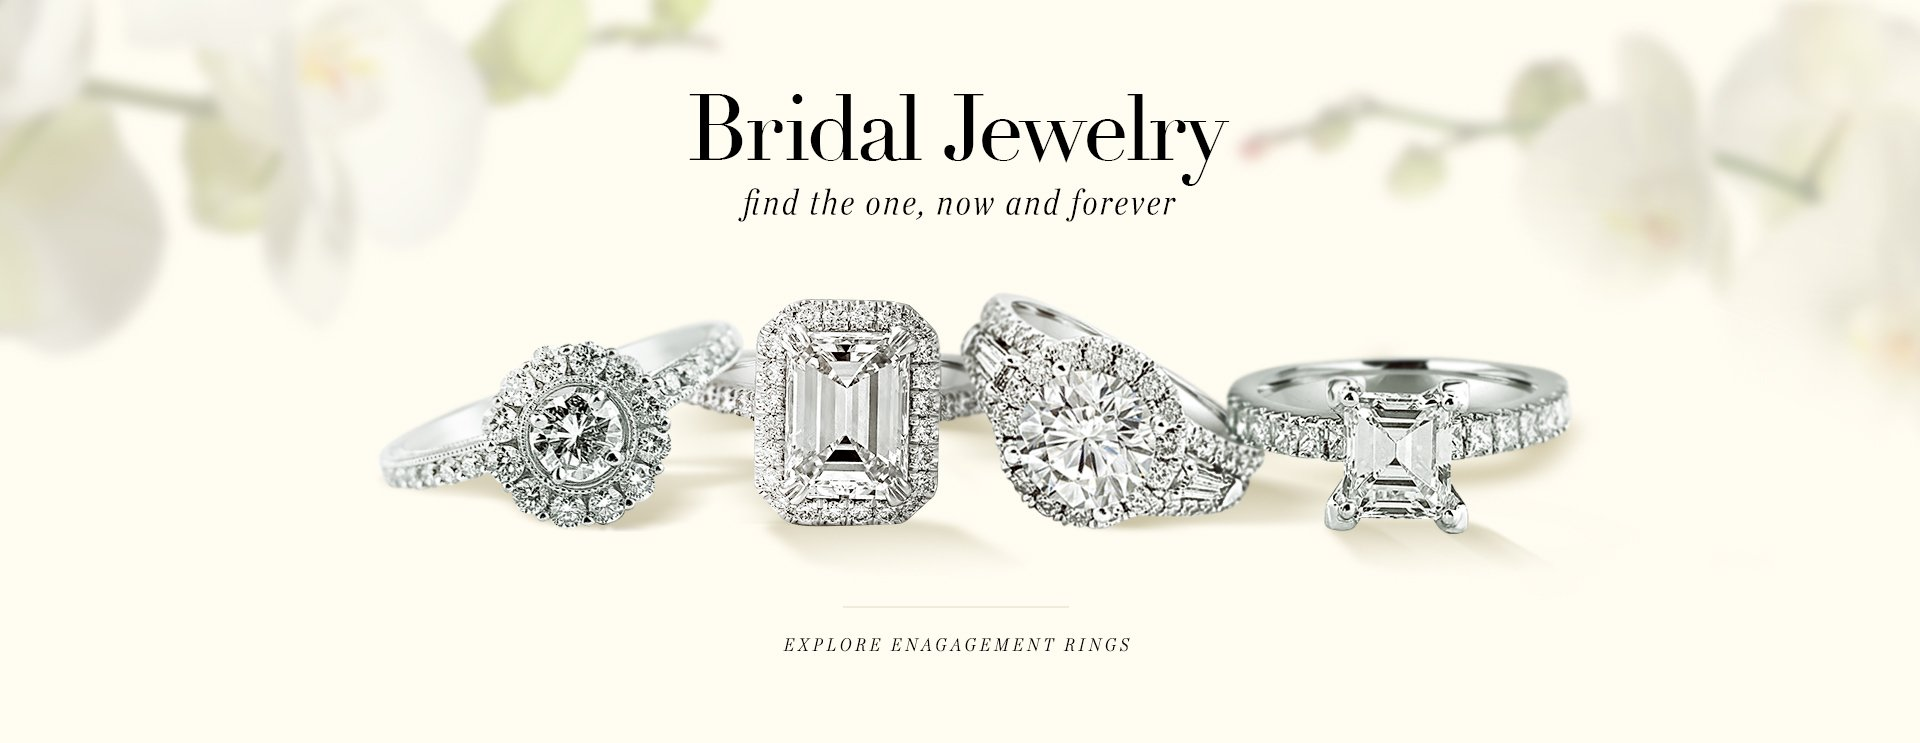 Jean Pierre Jewelers - Los Angeles Engagement Rings